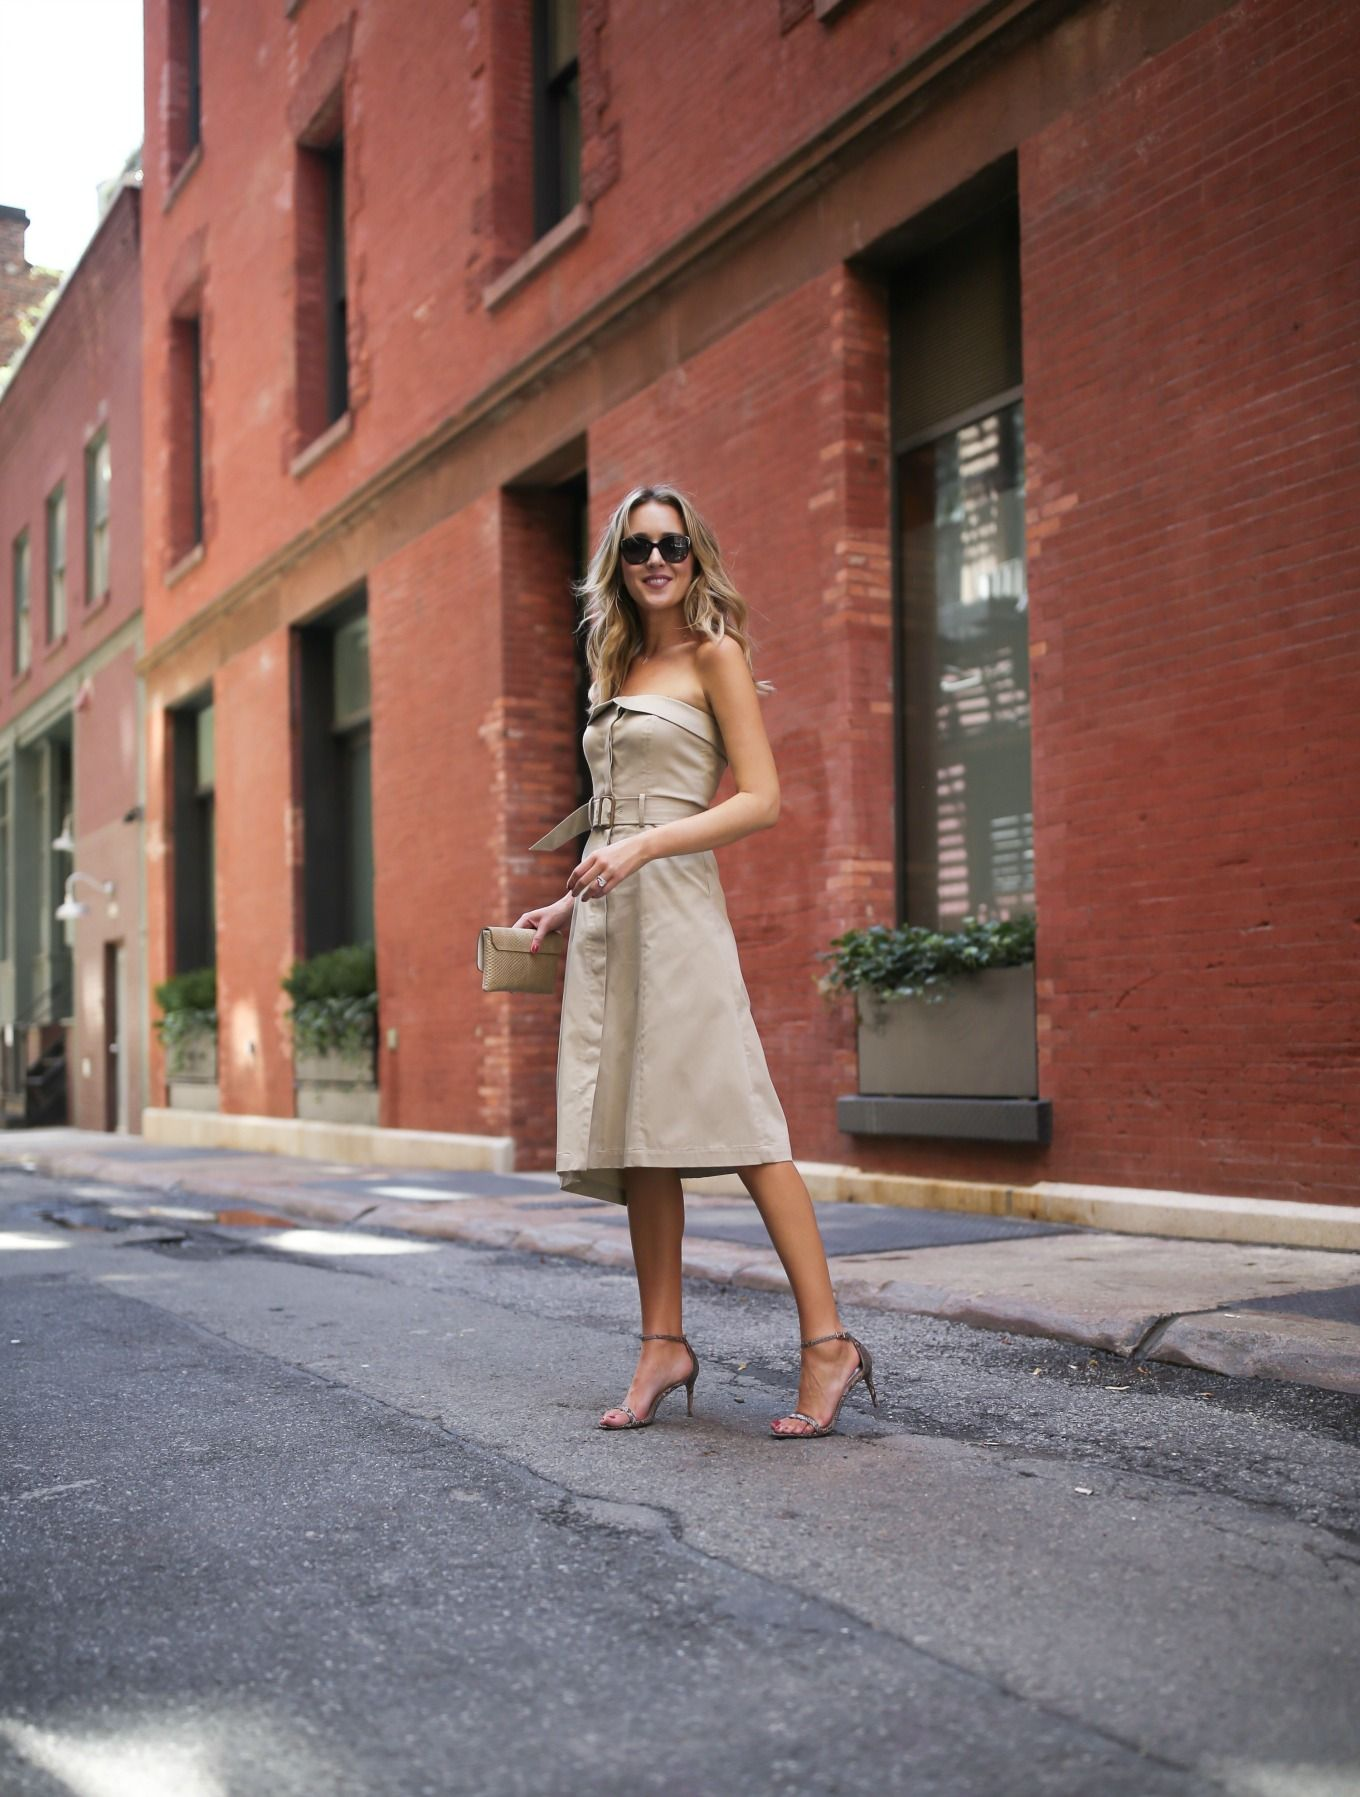 fa99984e30837 Khaki strapless fit and flare Banana Republic dress with nude sandals and a  gold snakeskin clutch